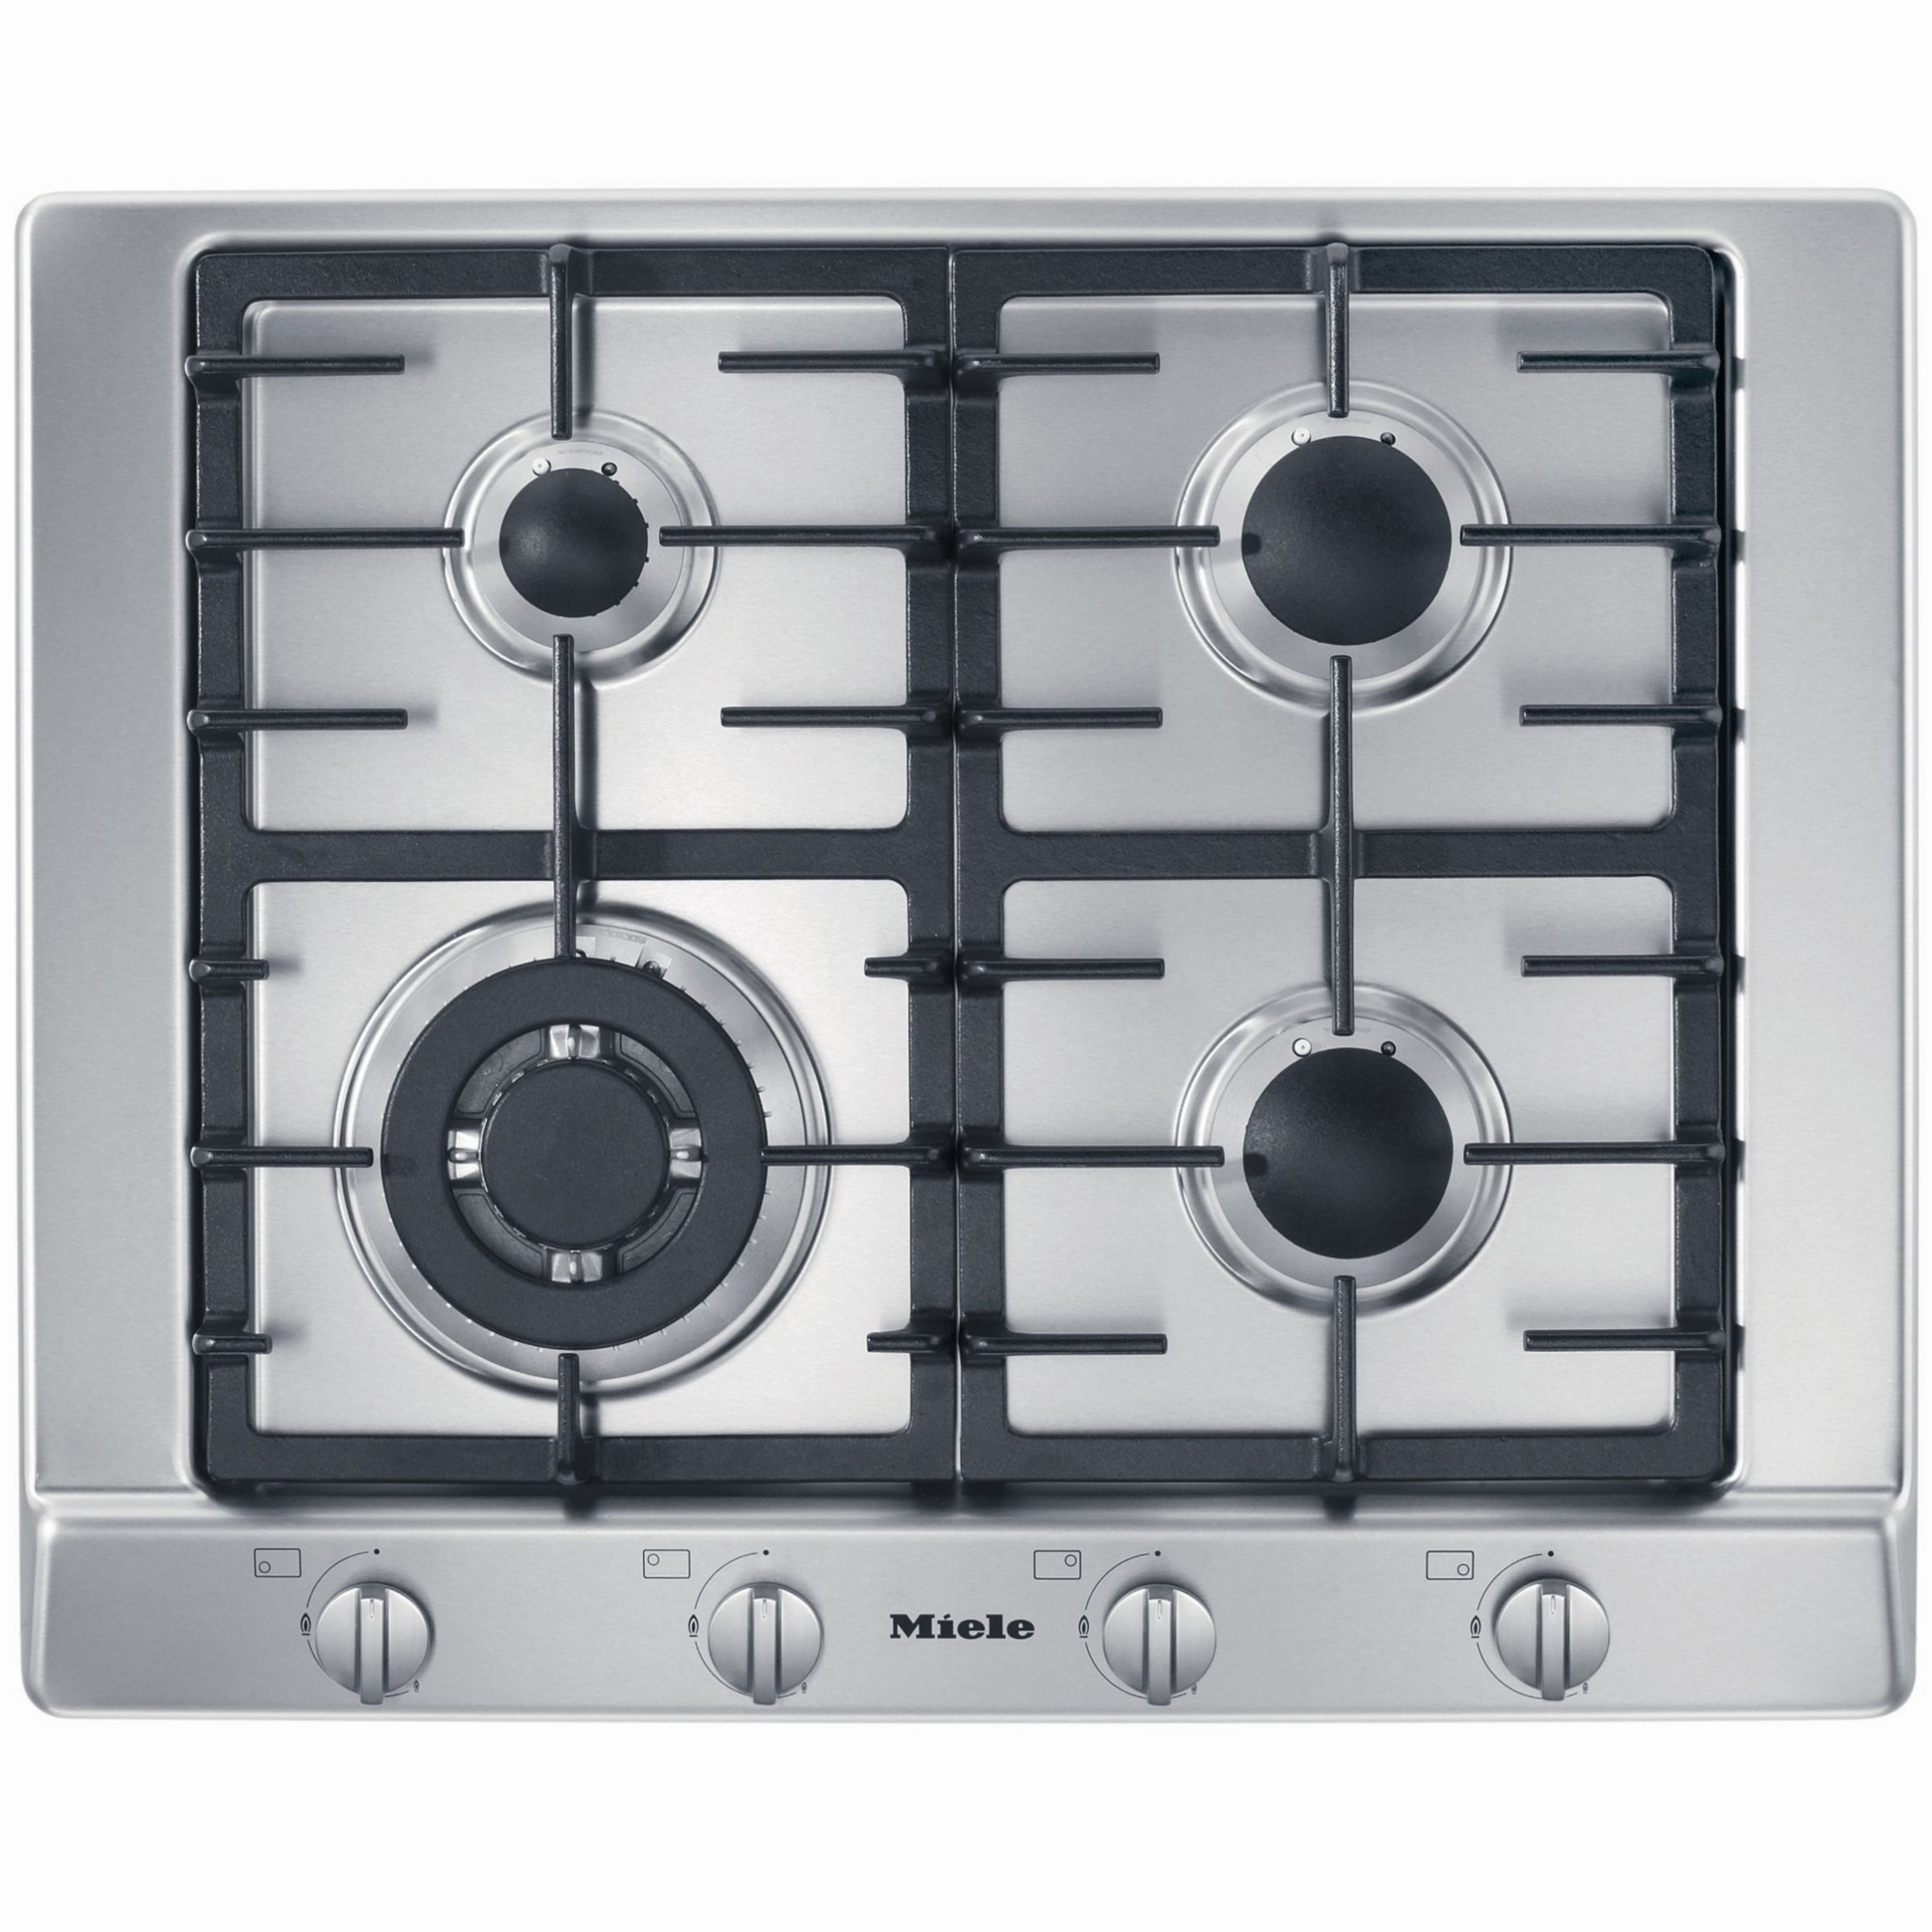 Miele KM362-1G Gas Hob, Stainless Steel at John Lewis